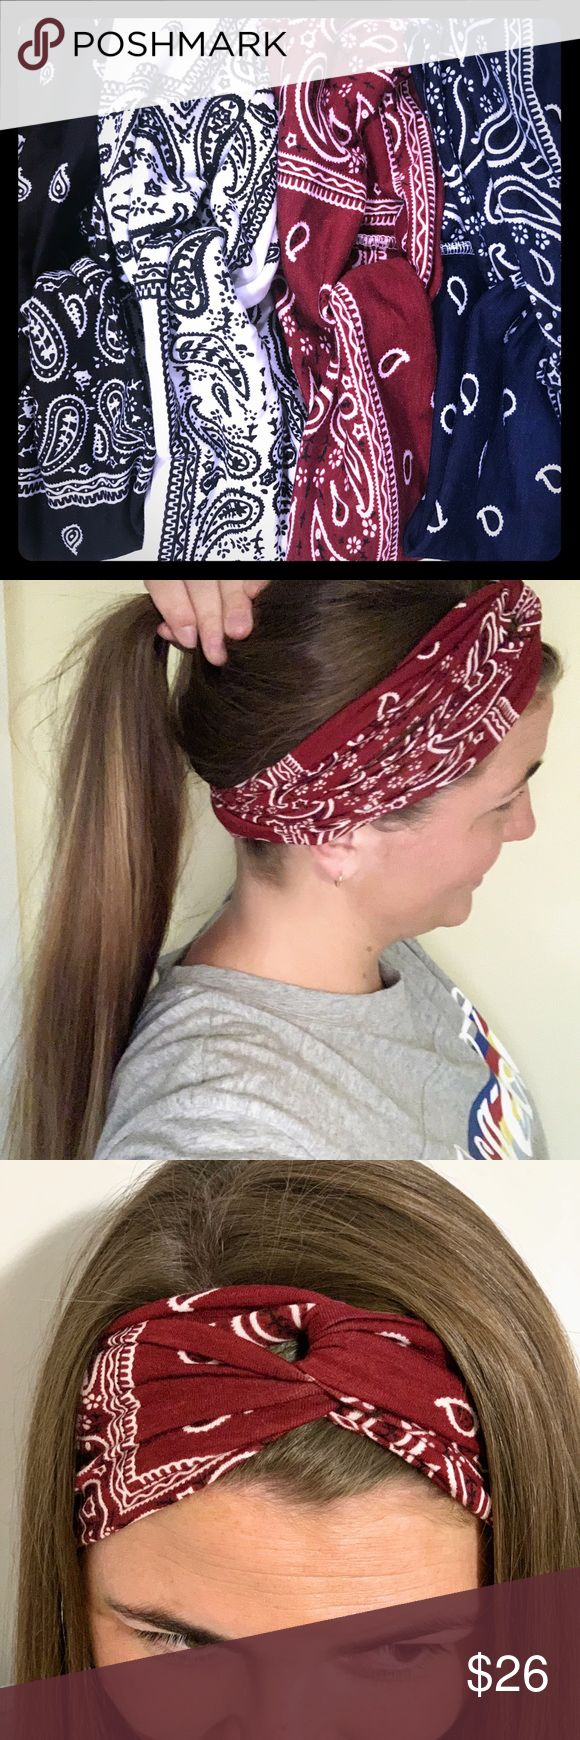 4 Pack bandana print yoga headband 4 pack! Bandana paisley print yoga headband. Comfortable, soft stretch cotton. Red, blue, black and white all inclu...